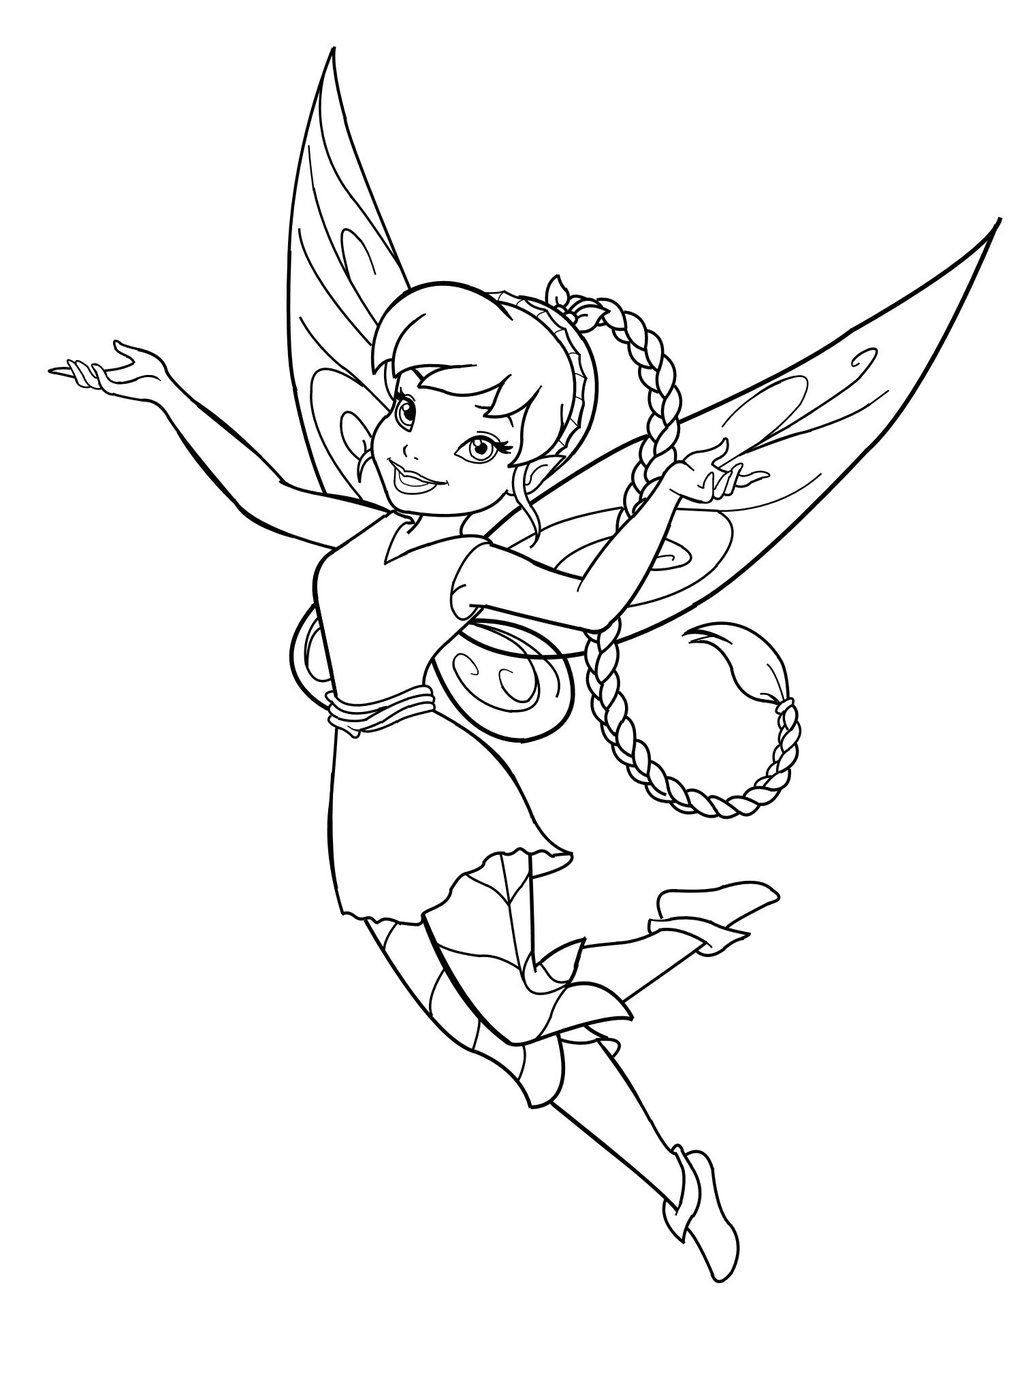 coloring pages of fairies - photo#14